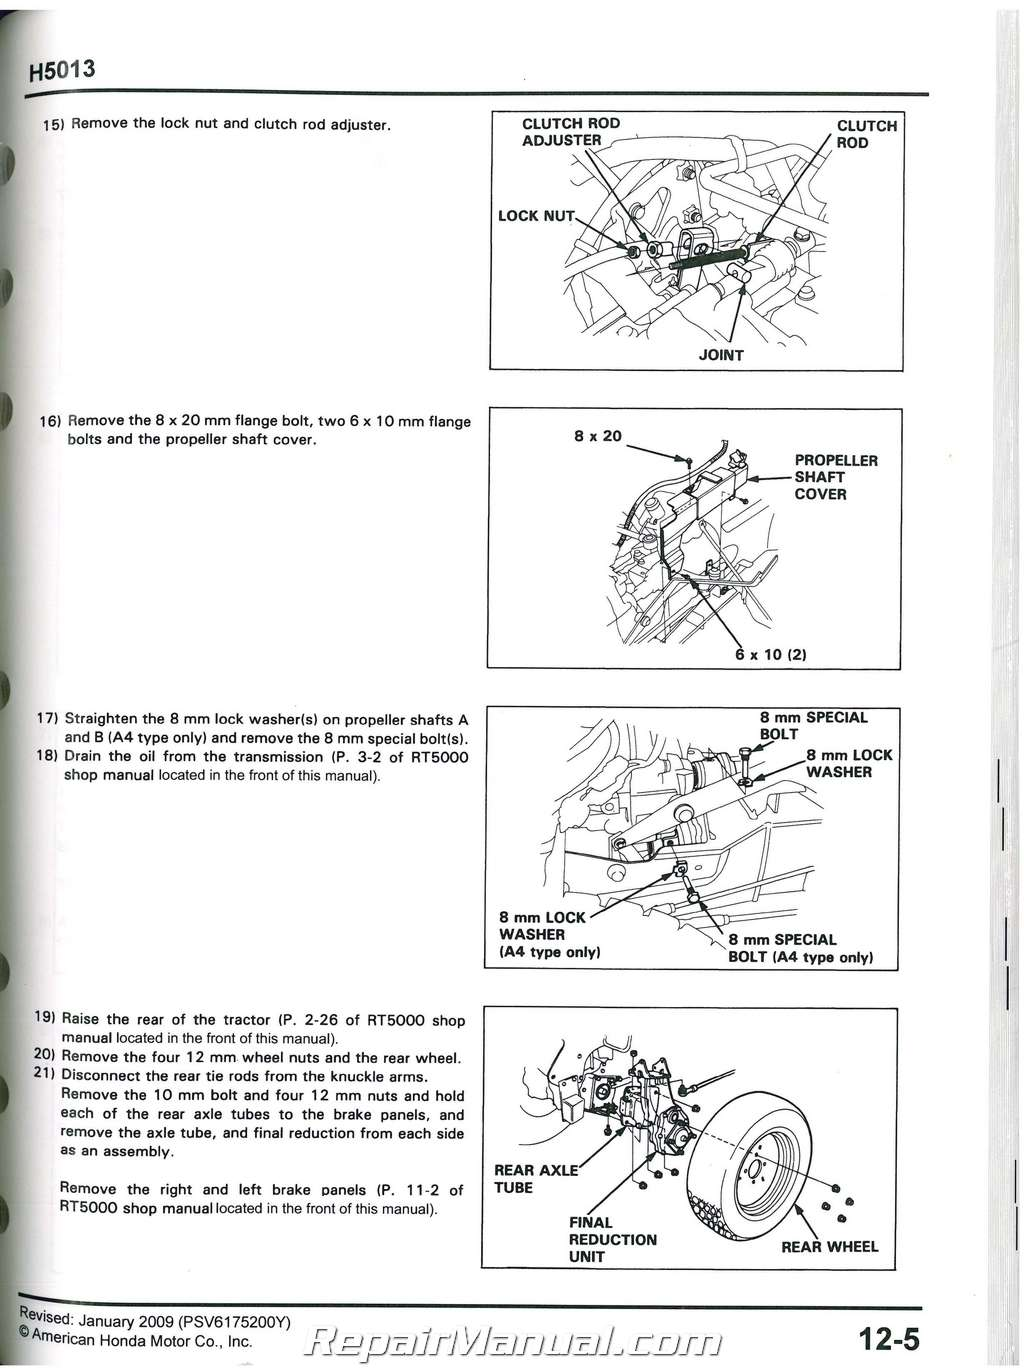 Honda H5013 RT5000 Lawn Tractor Shop Manual on